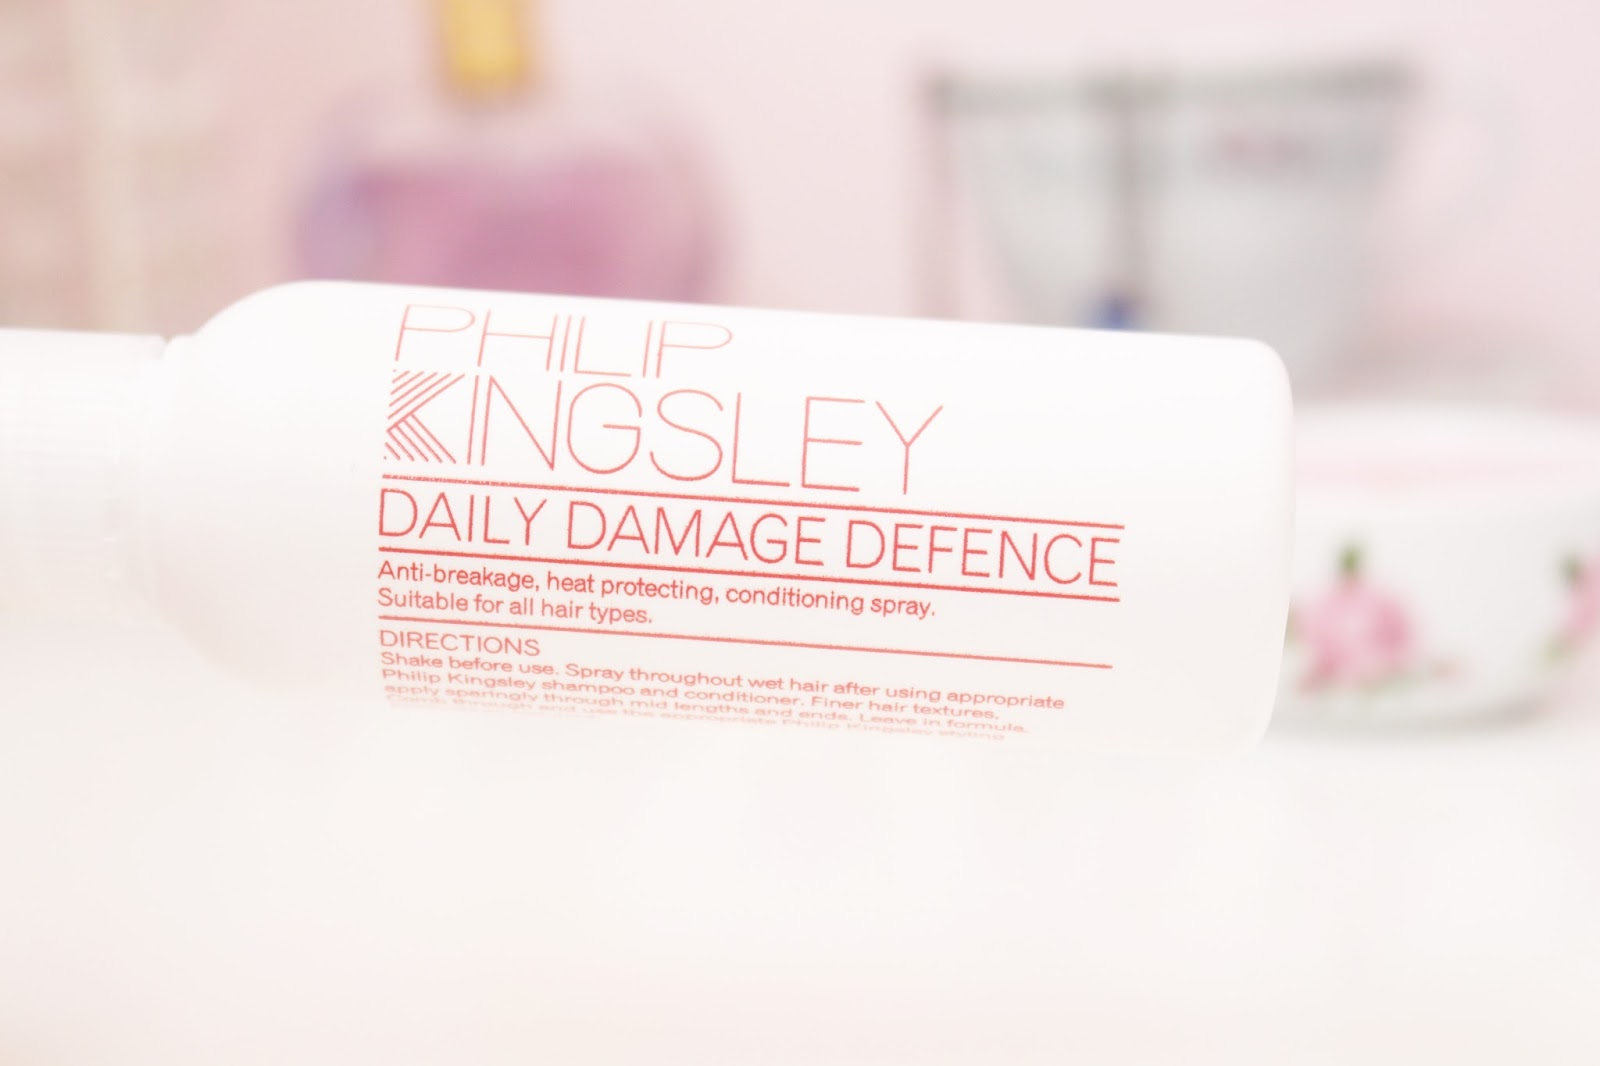 Philip Kingsley Daily Damage Defence Spray Review